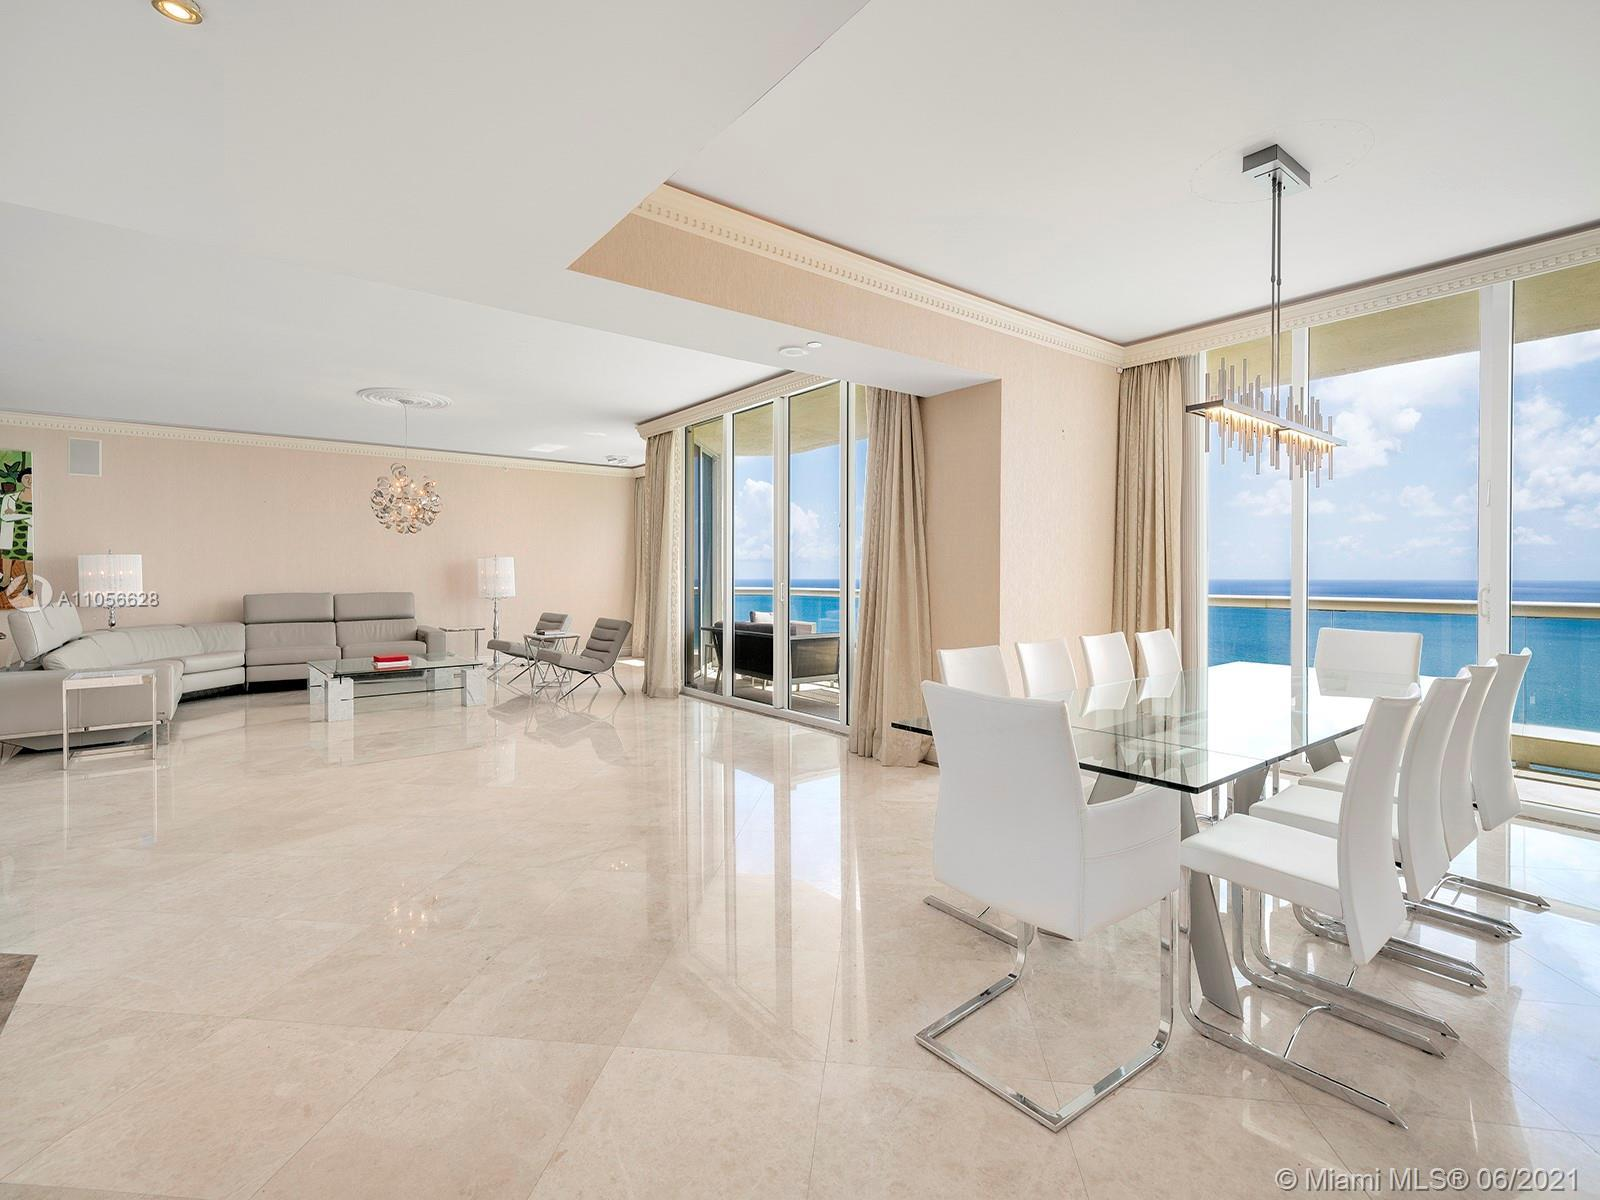 A grand apartment within the Acqualina Resort & Residences, consistently ranked one of the top five